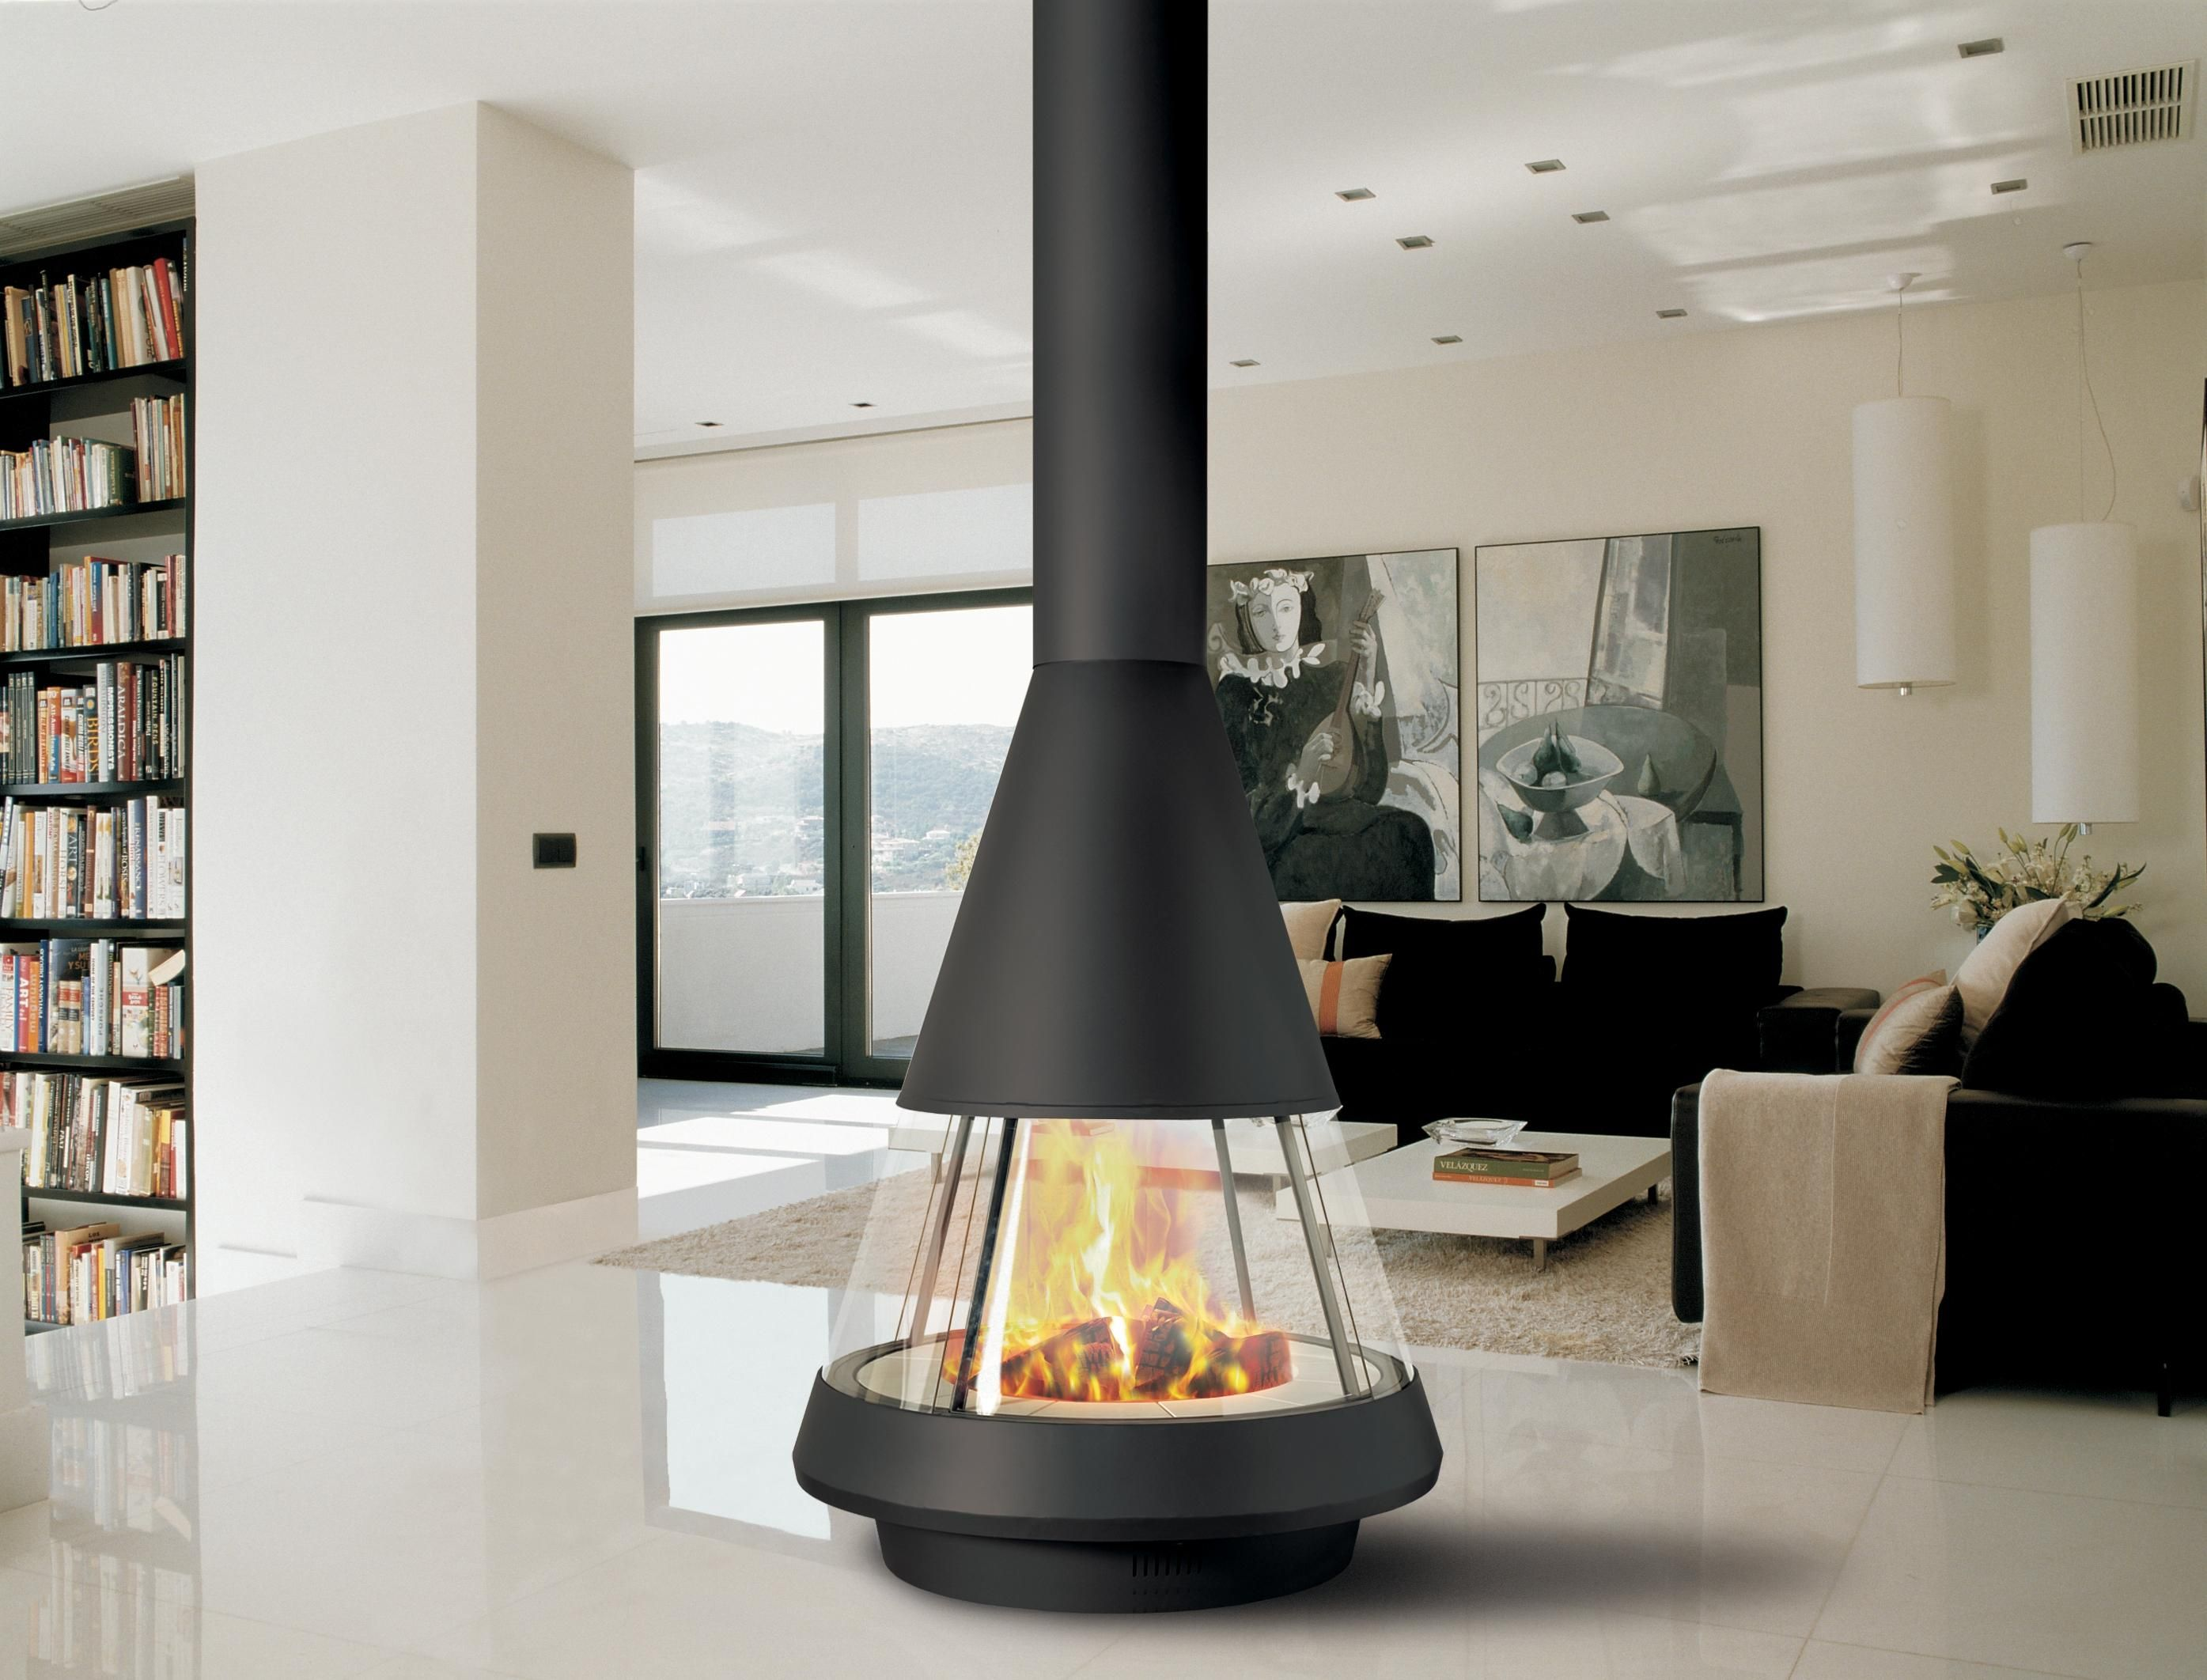 Central fireplace by Hergom with a 360 view of the fire